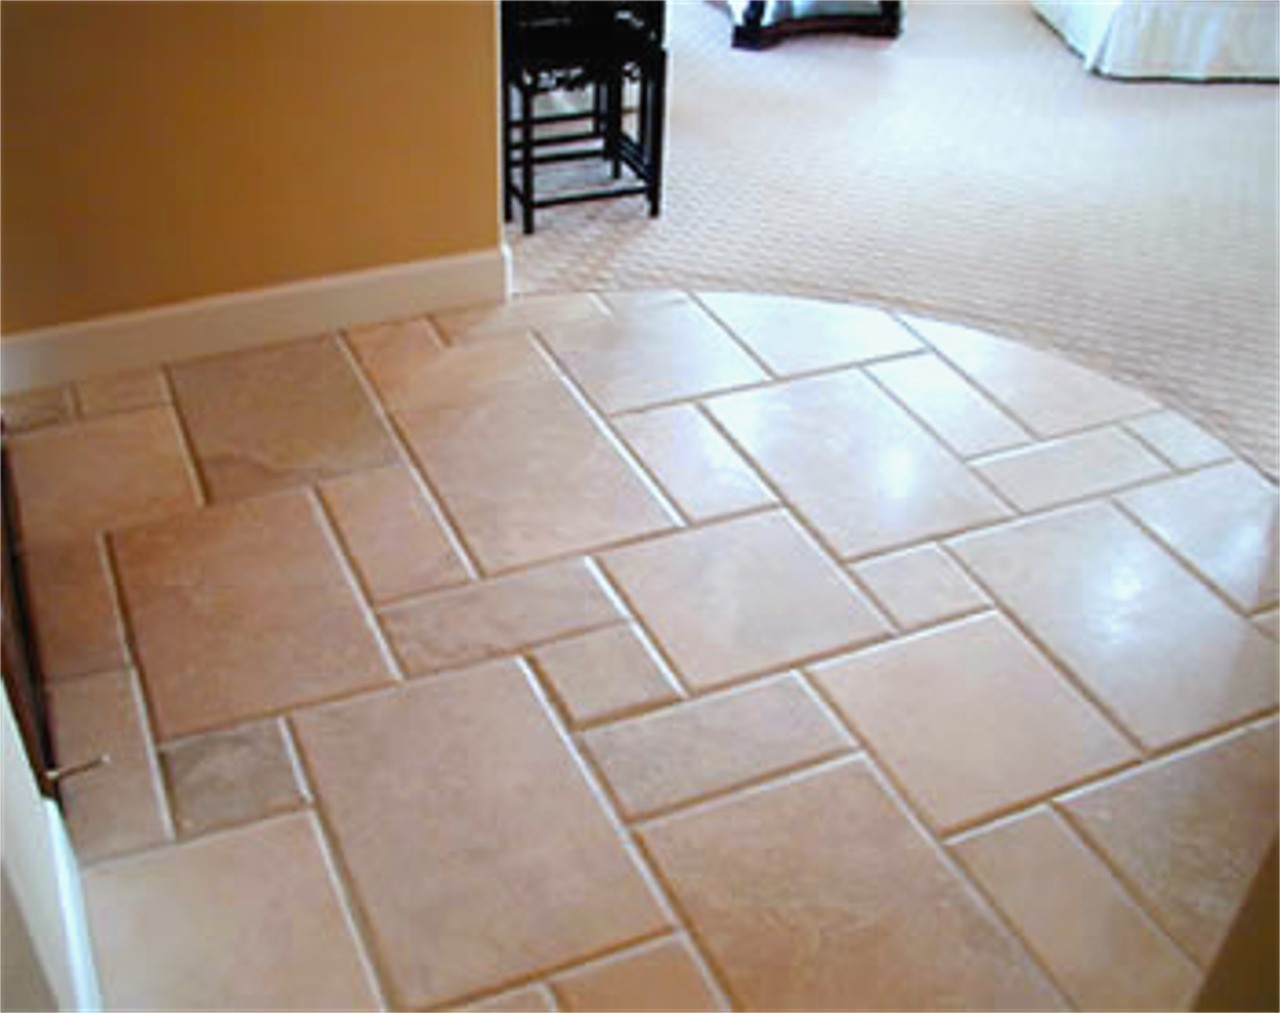 Ceramic porcelain tile installation m r flooring company for Ceramic tiles for kitchen floor ideas